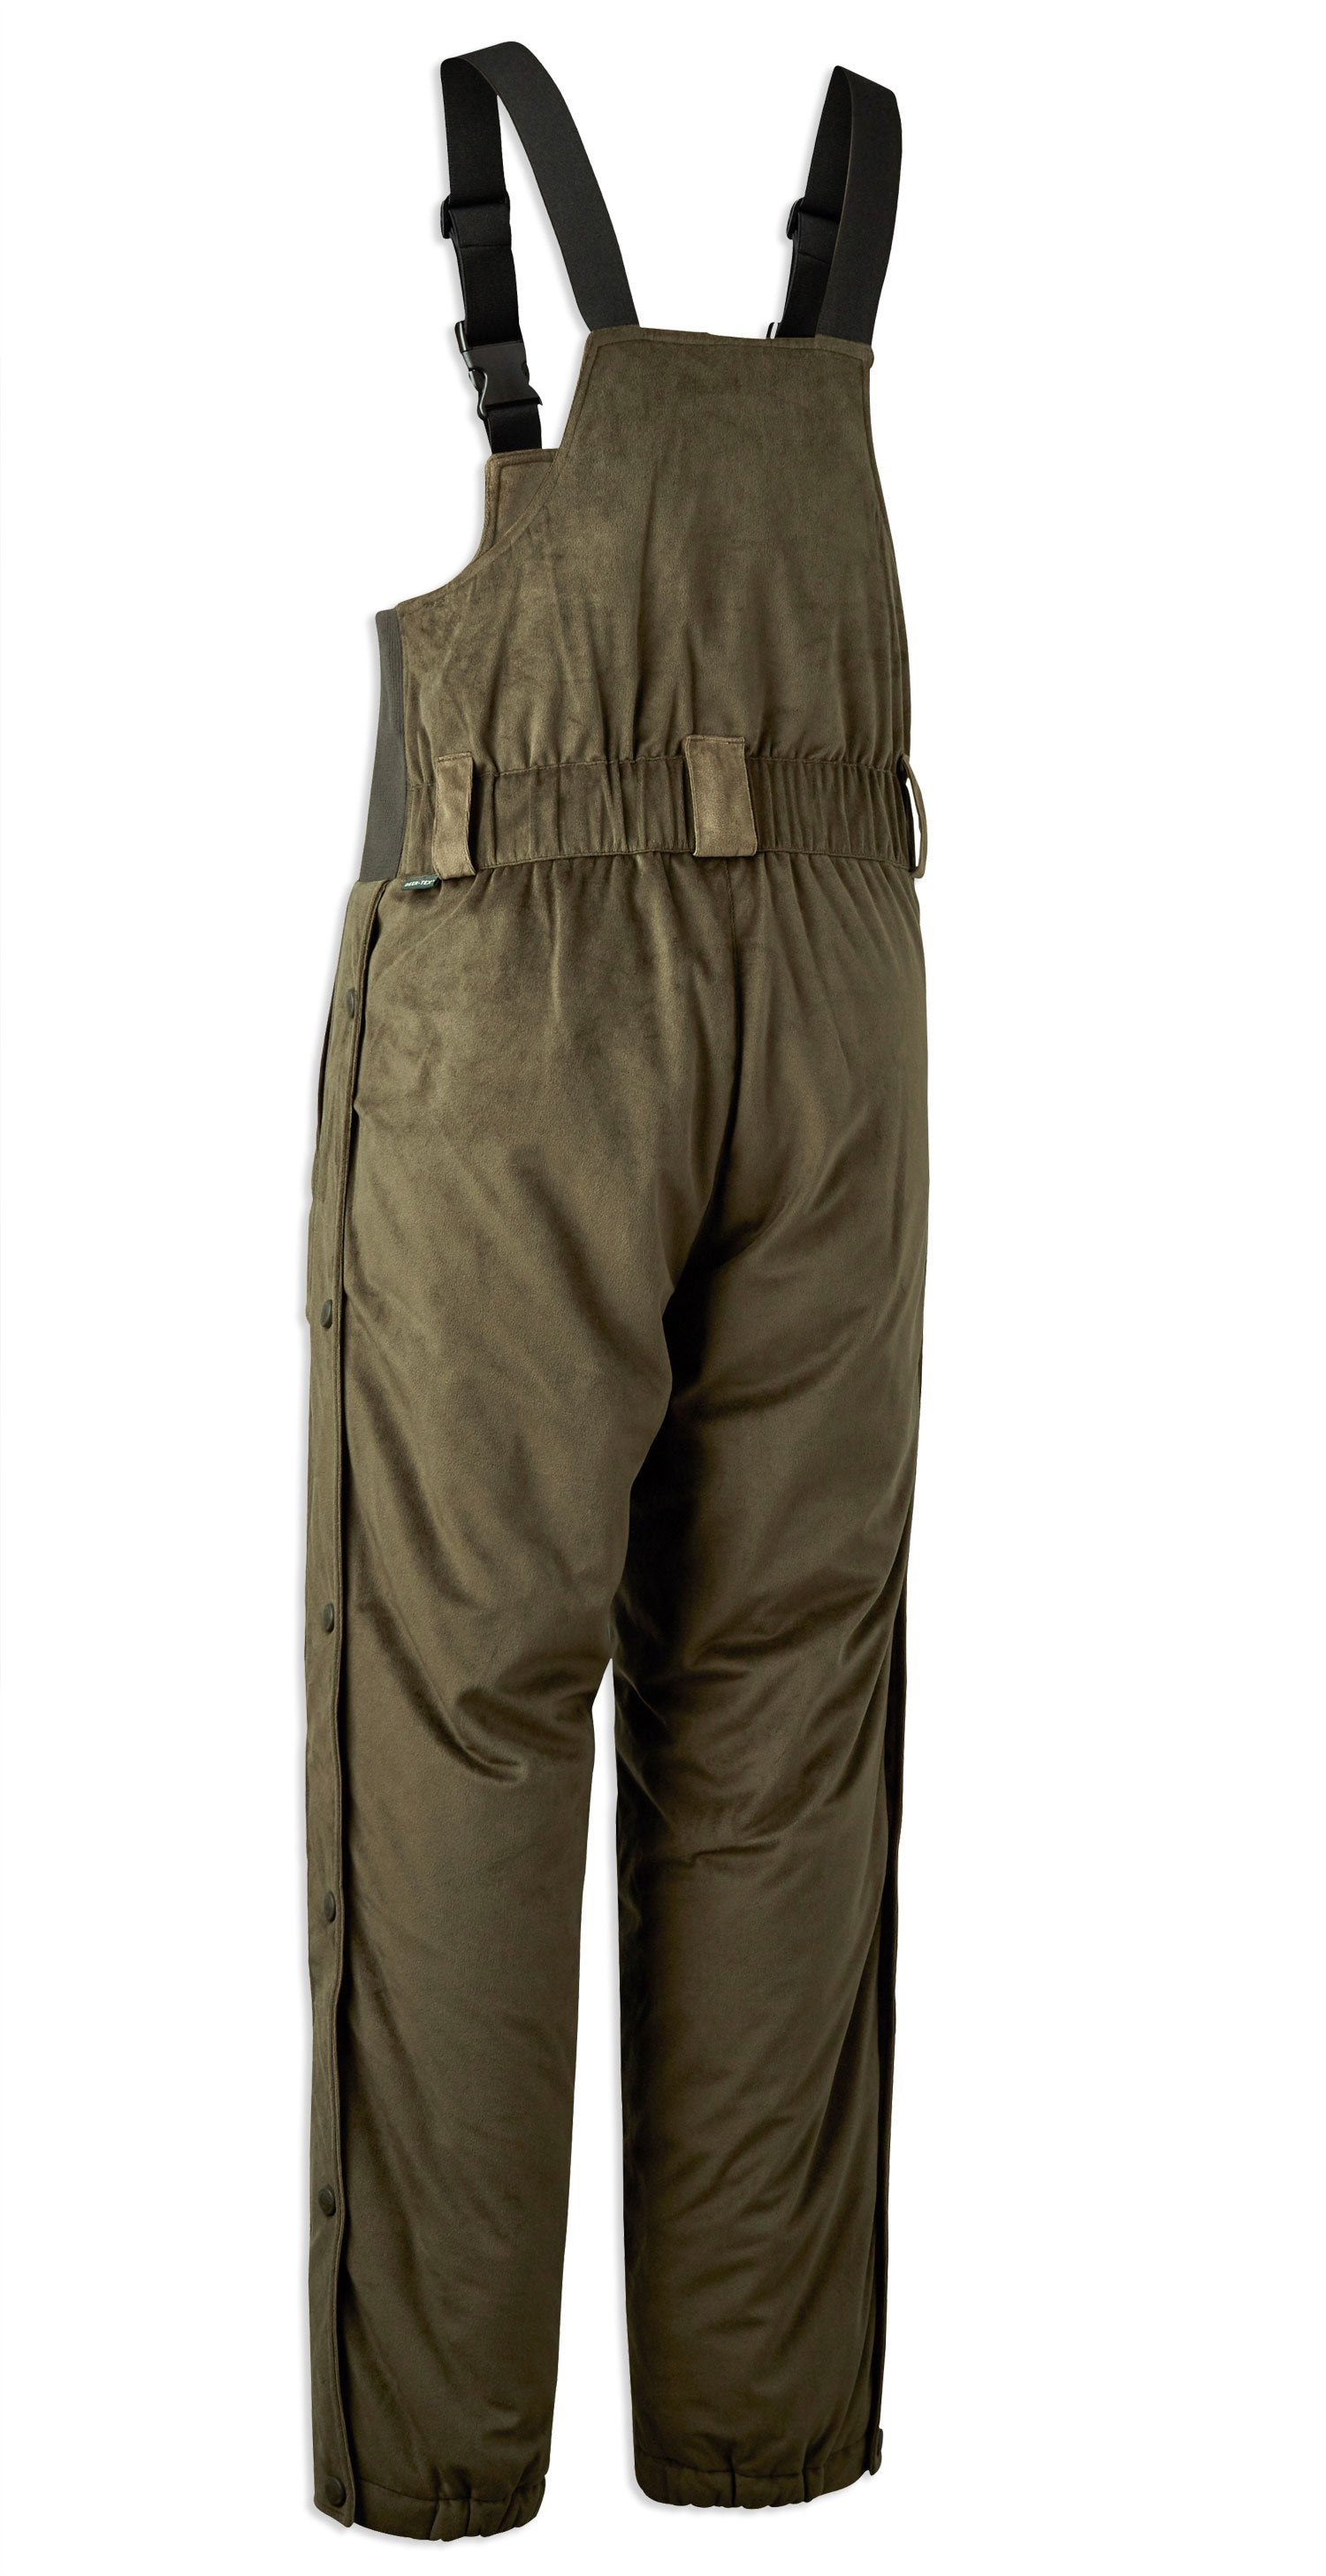 Back View Deerhunter Rusky Silent Bib Trousers